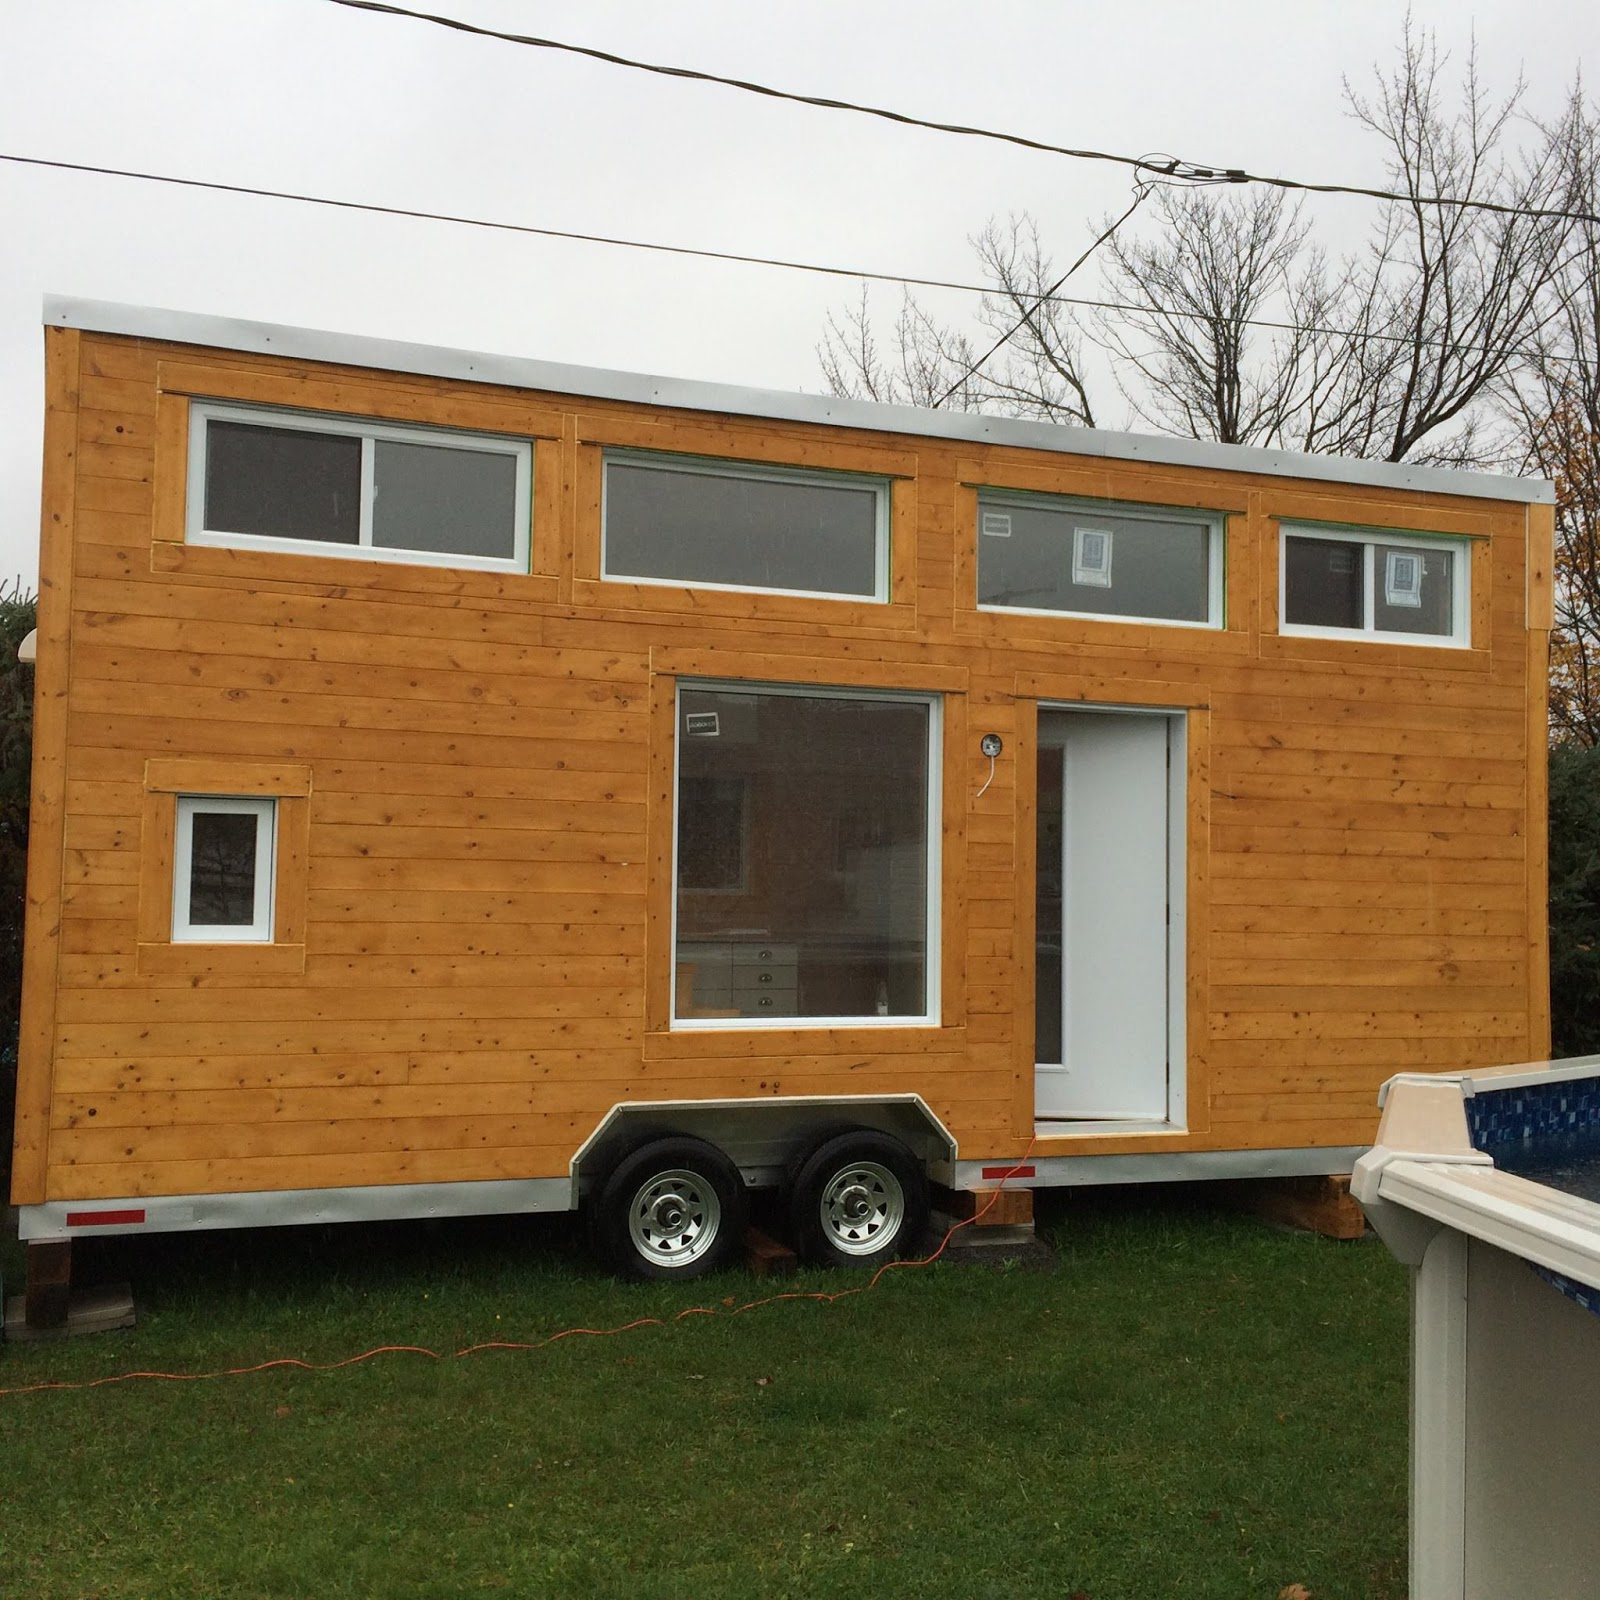 8 Staycation Worthy Tiny Homes For Sale: TINY HOUSE TOWN: Mini Green House